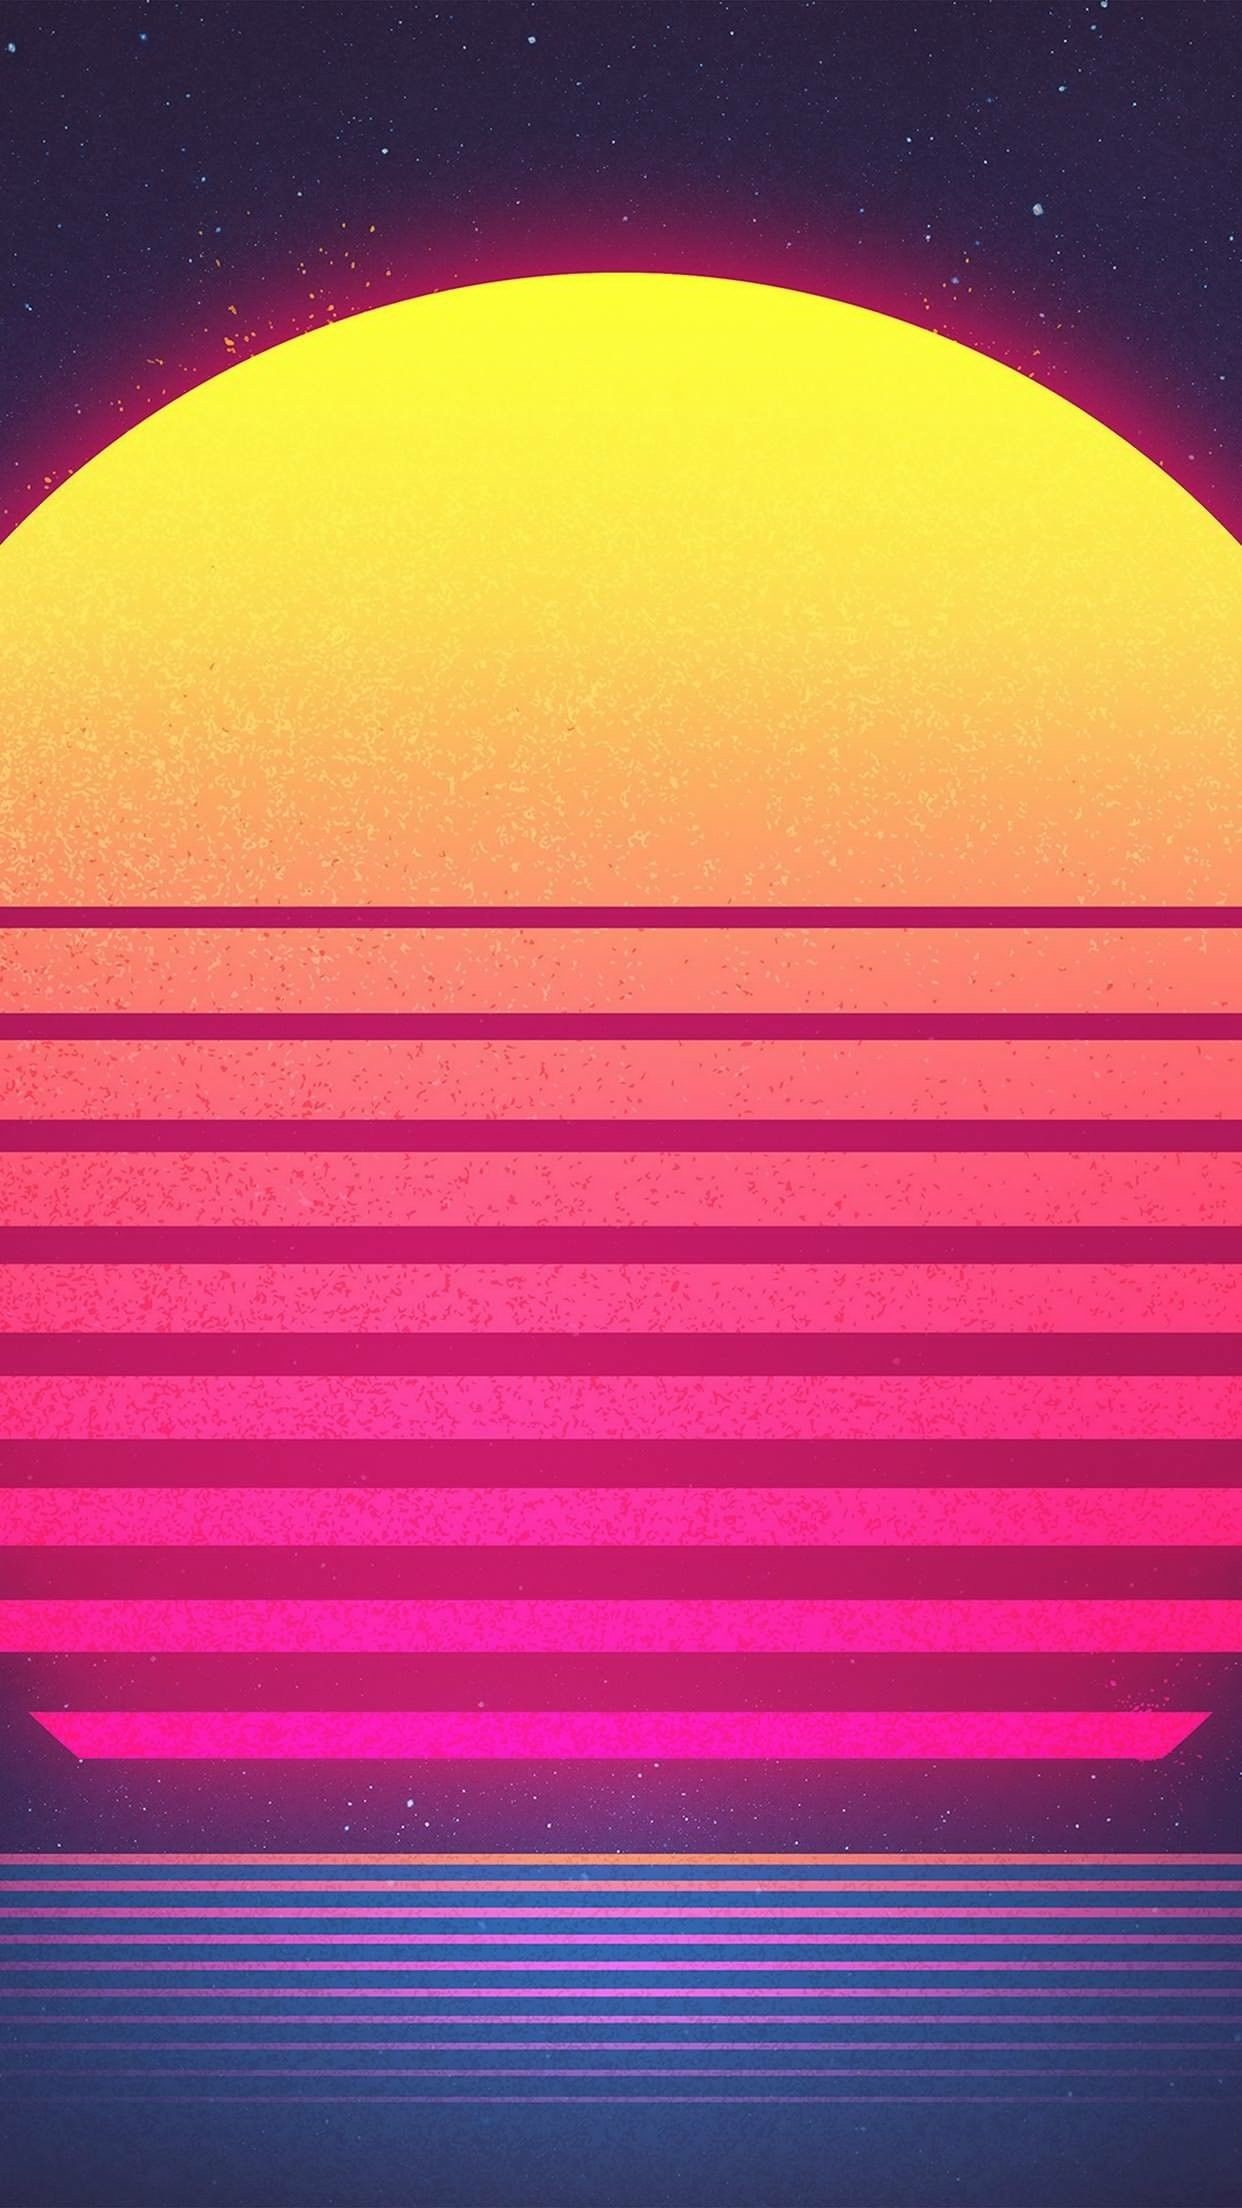 Res: 1242x2208, Music Wallpaper, Wallpaper For Iphone, Wallpaper Backgrounds, Retro  Colours, Sun Art, Retro Art, Cover Art, Art Illustrations, Smartphone